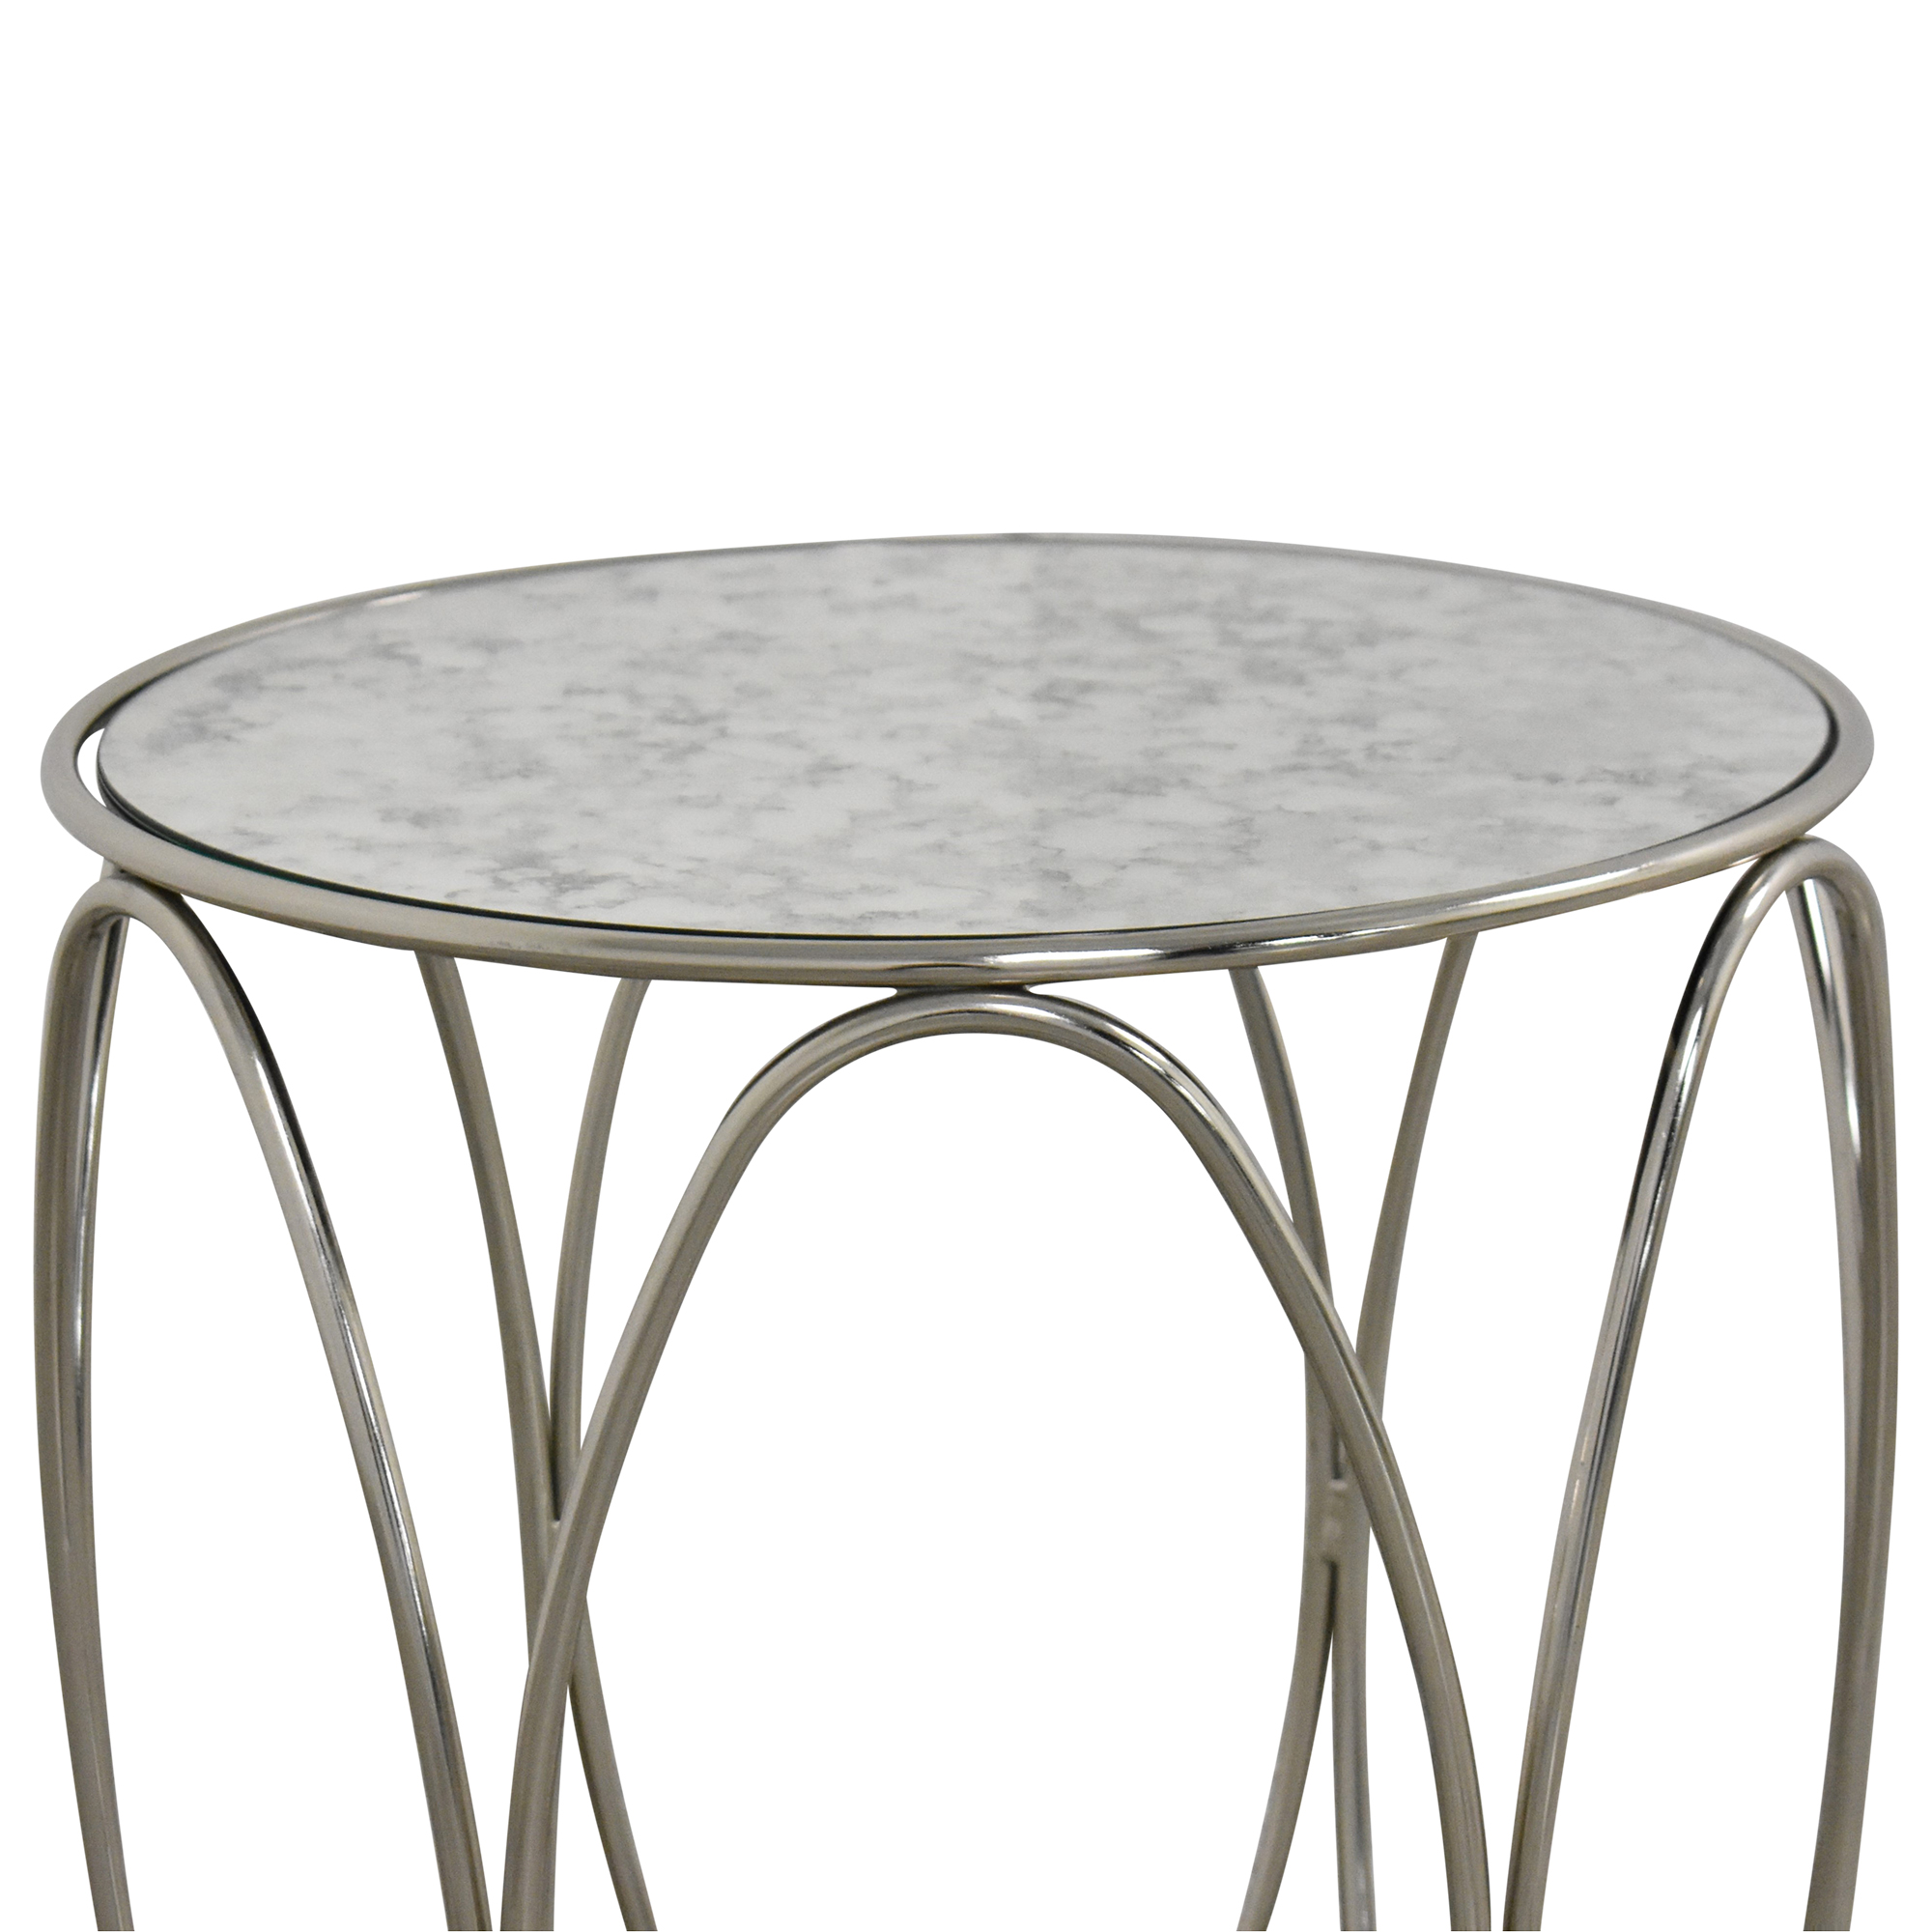 Crate & Barrel Crate & Barrel Modern Round End Table on sale